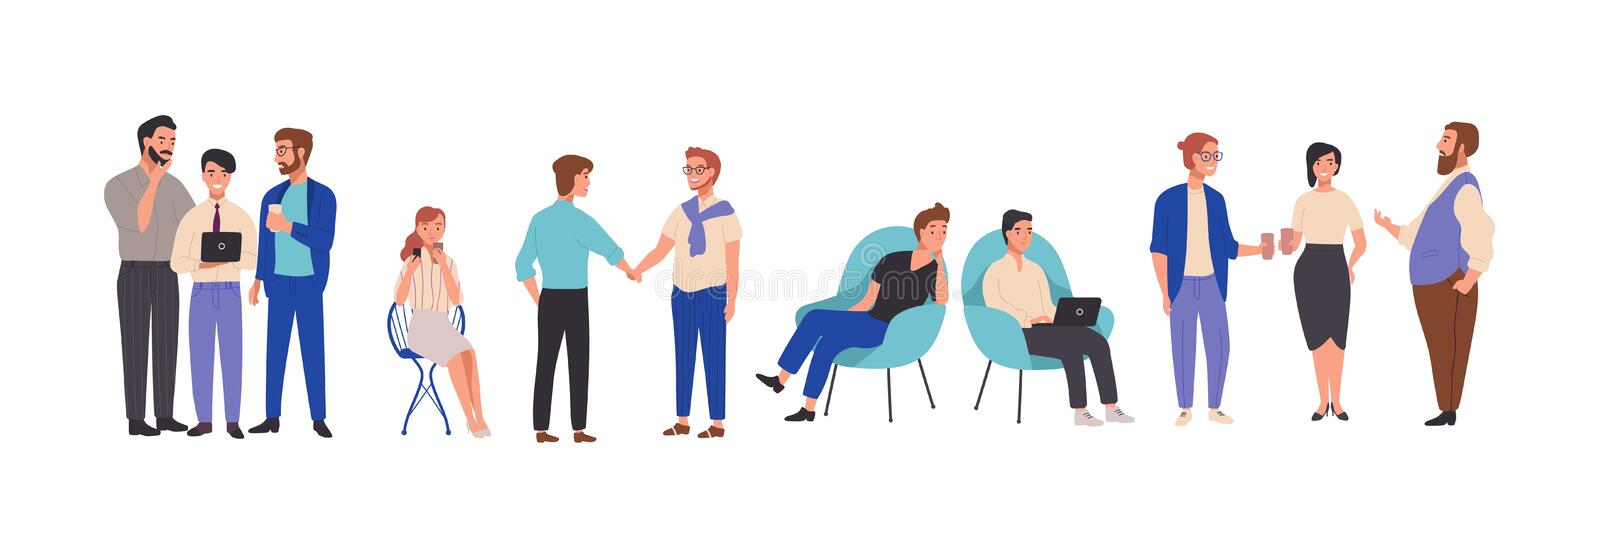 Men and women dressed in smart clothes take part in business meeting, formal discussion, conference. Male and female. Cartoon characters talk to each other stock illustration